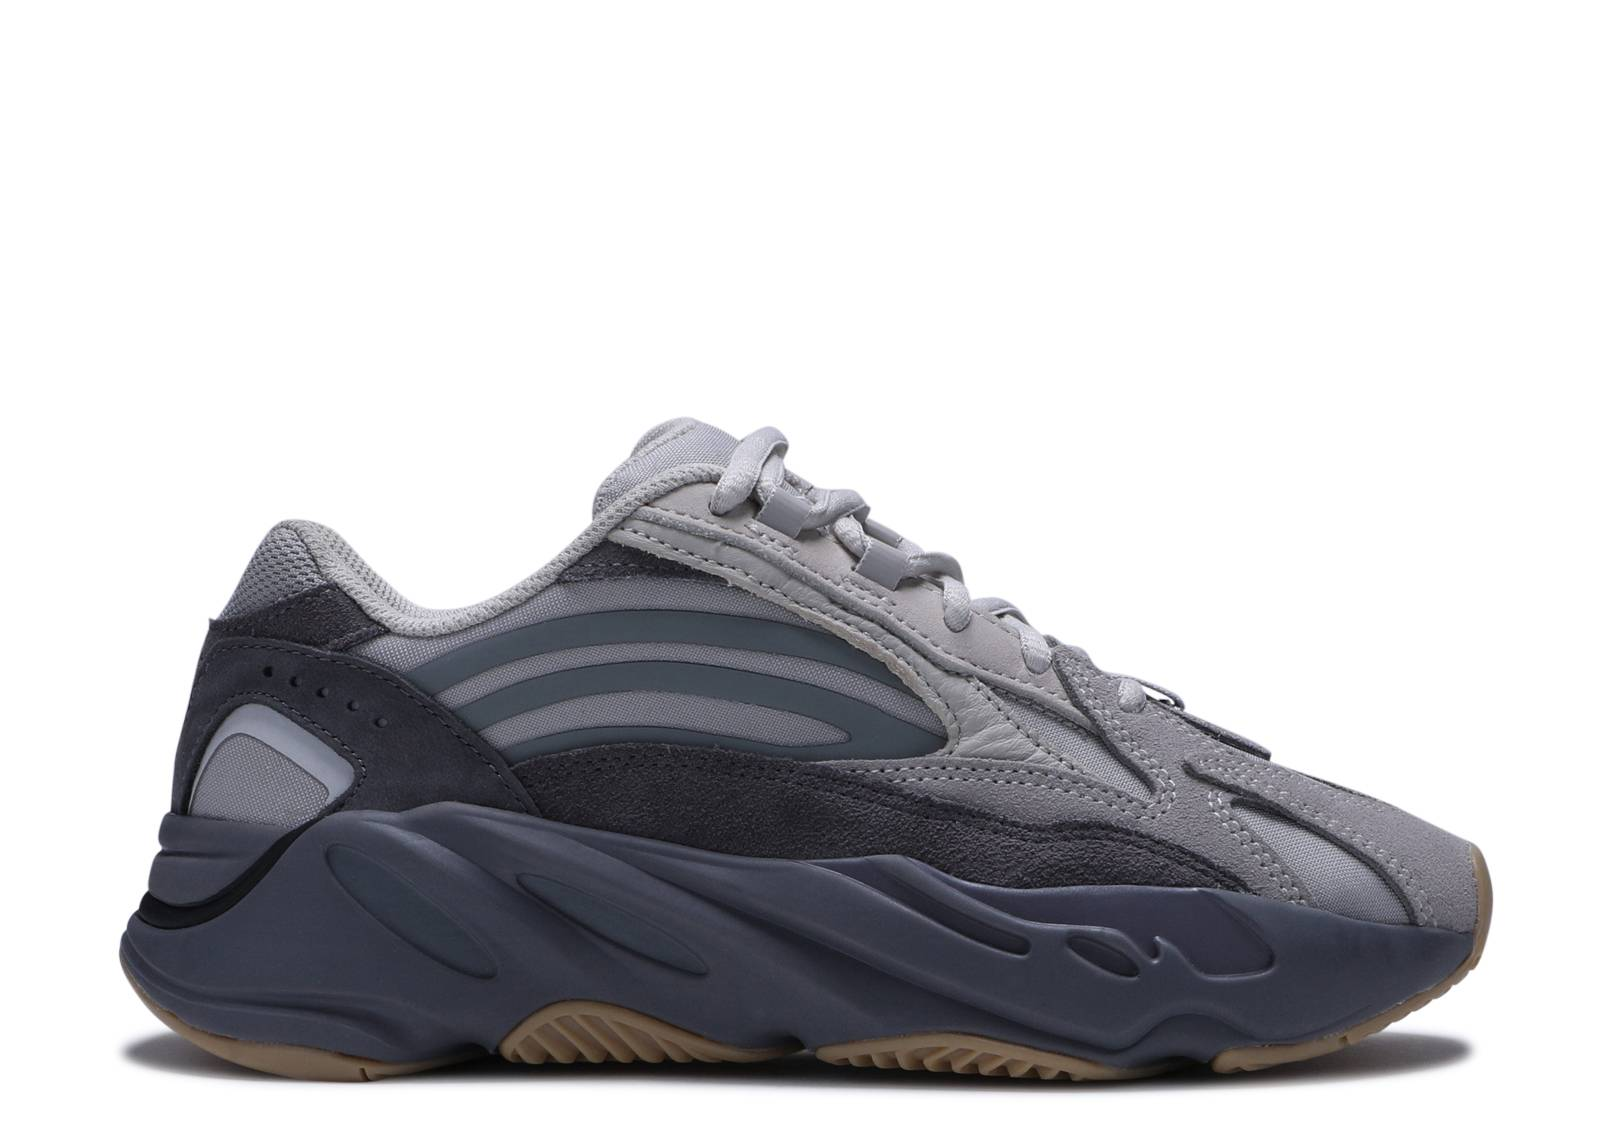 new arrival e6bed 068a4 Yeezy Boost 700 | Flight Club